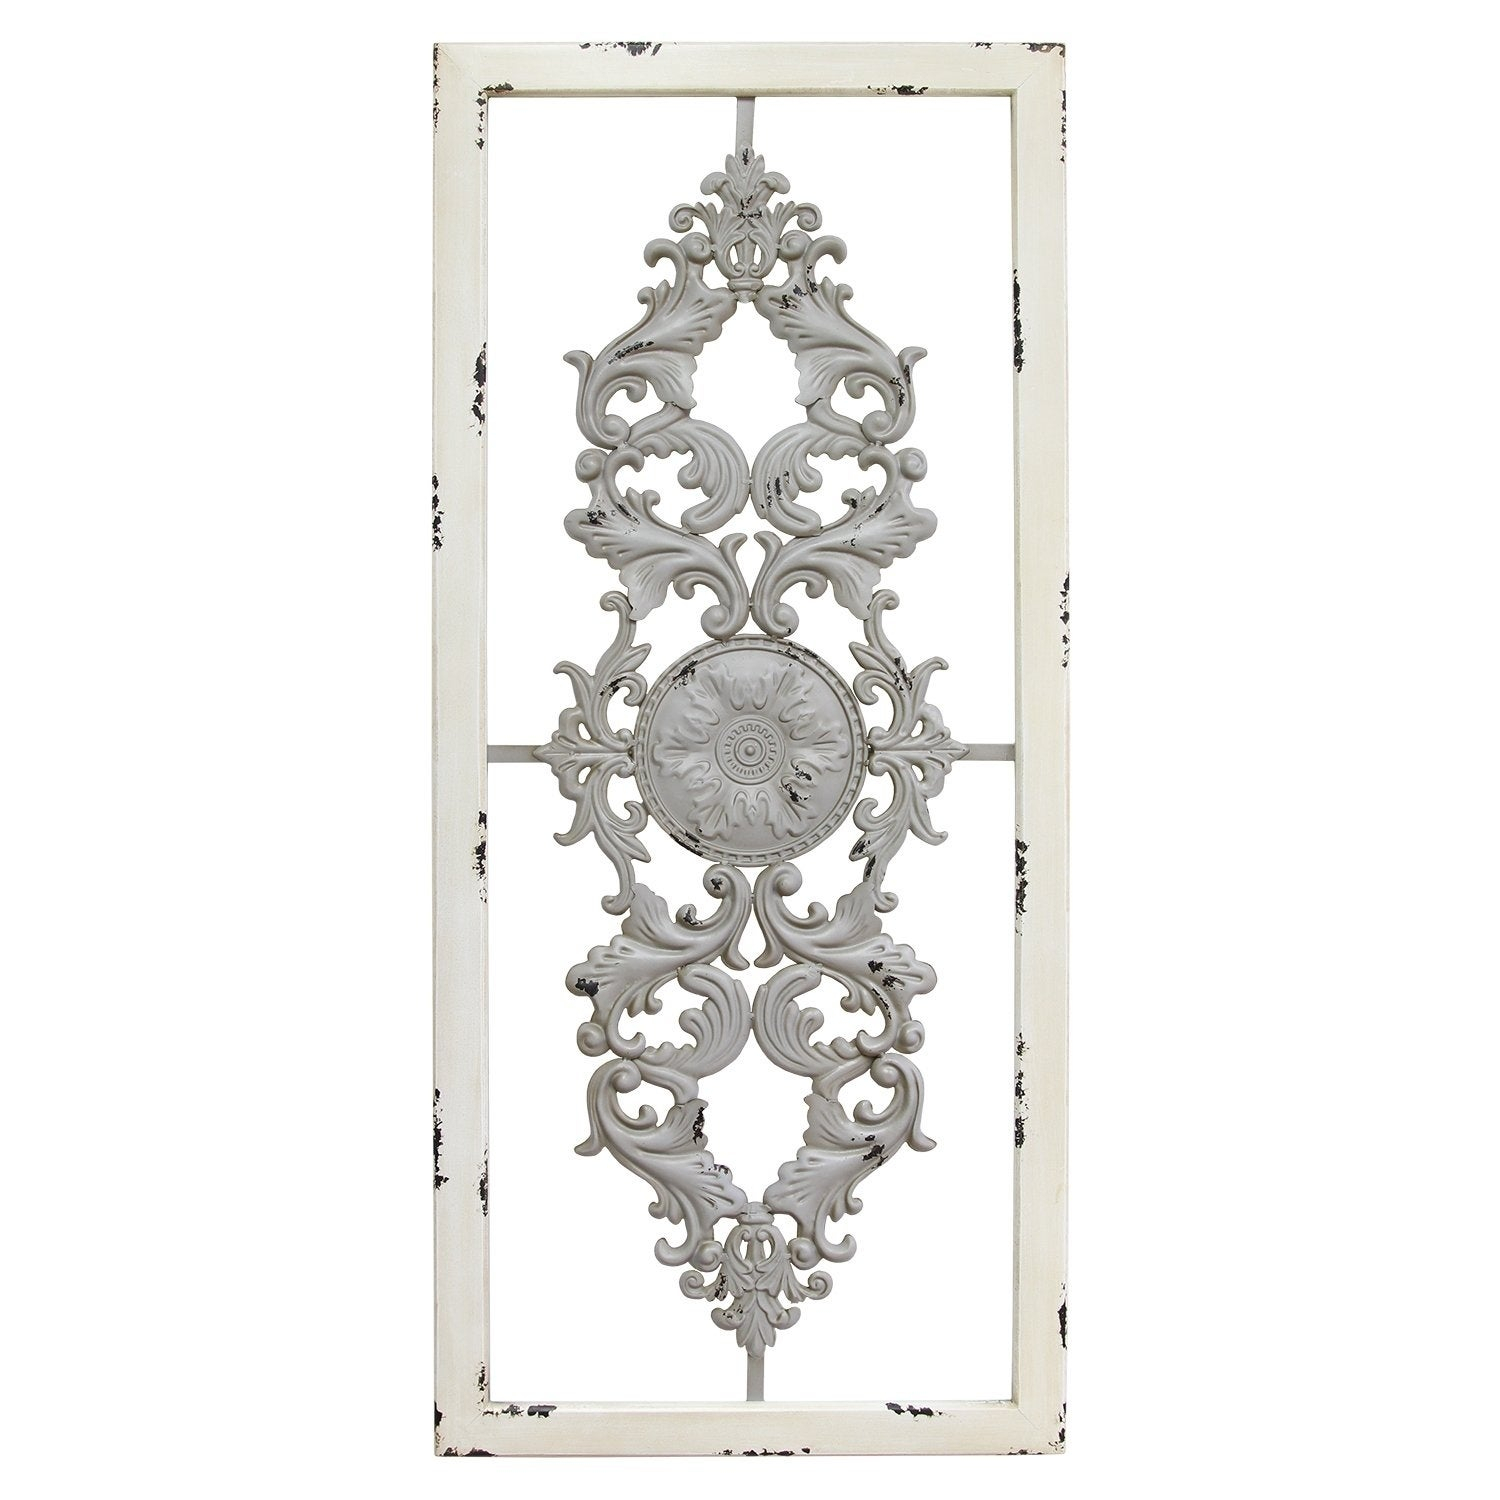 Well Known Ornate Scroll Wall Decor Inside Ornate Scroll Panel Grey Wall Decor White Frame 36X16 Metal Wood (View 7 of 20)